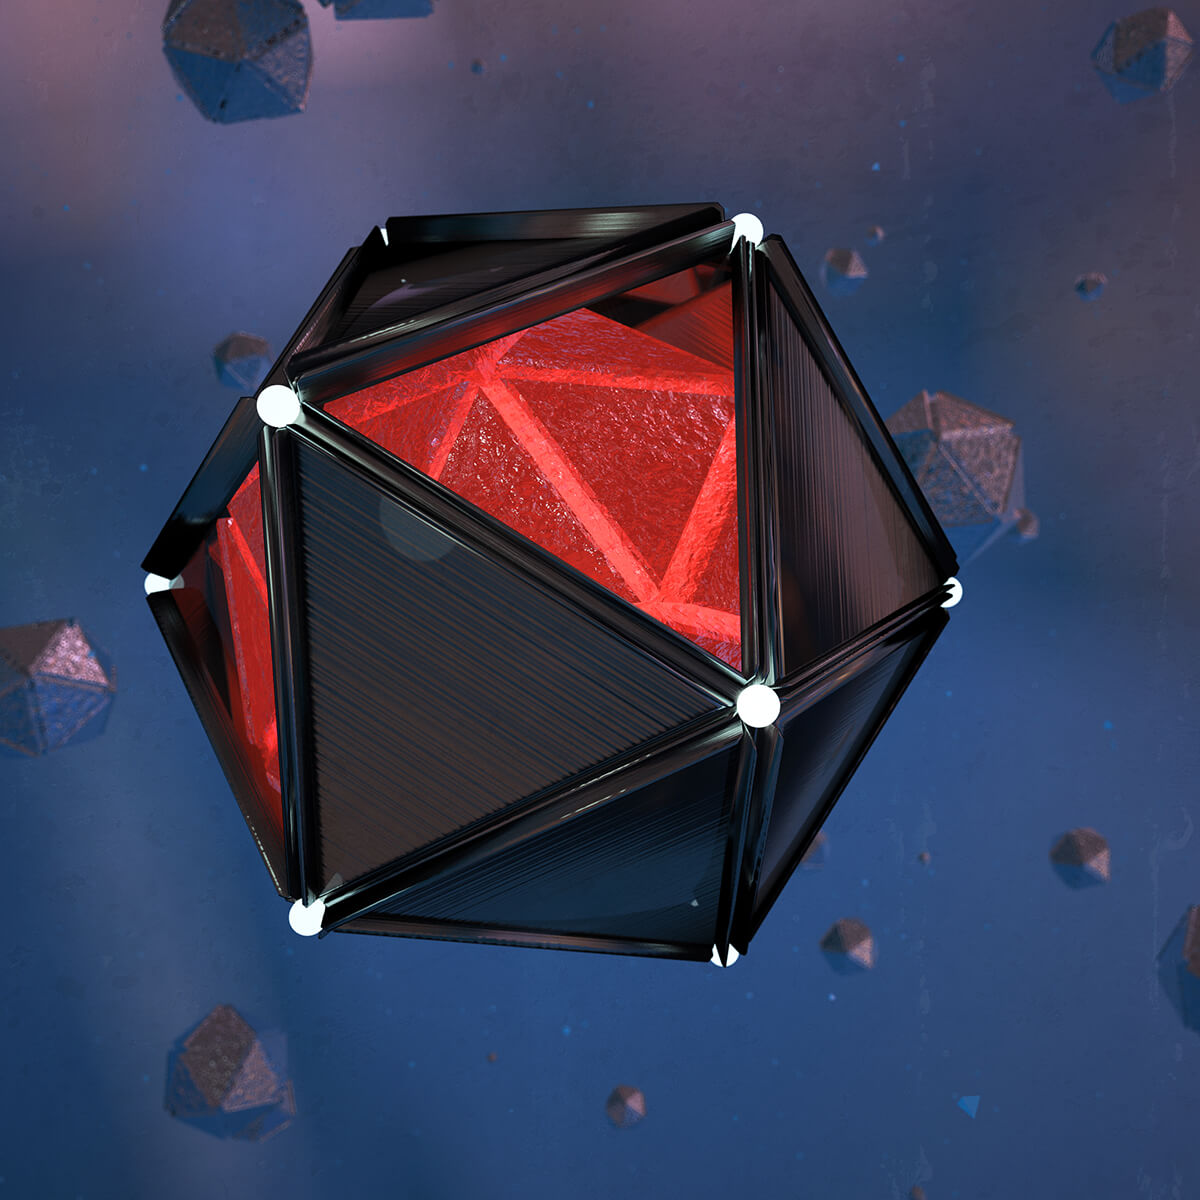 3D render of black metal octagons filled with red liquid floating in space